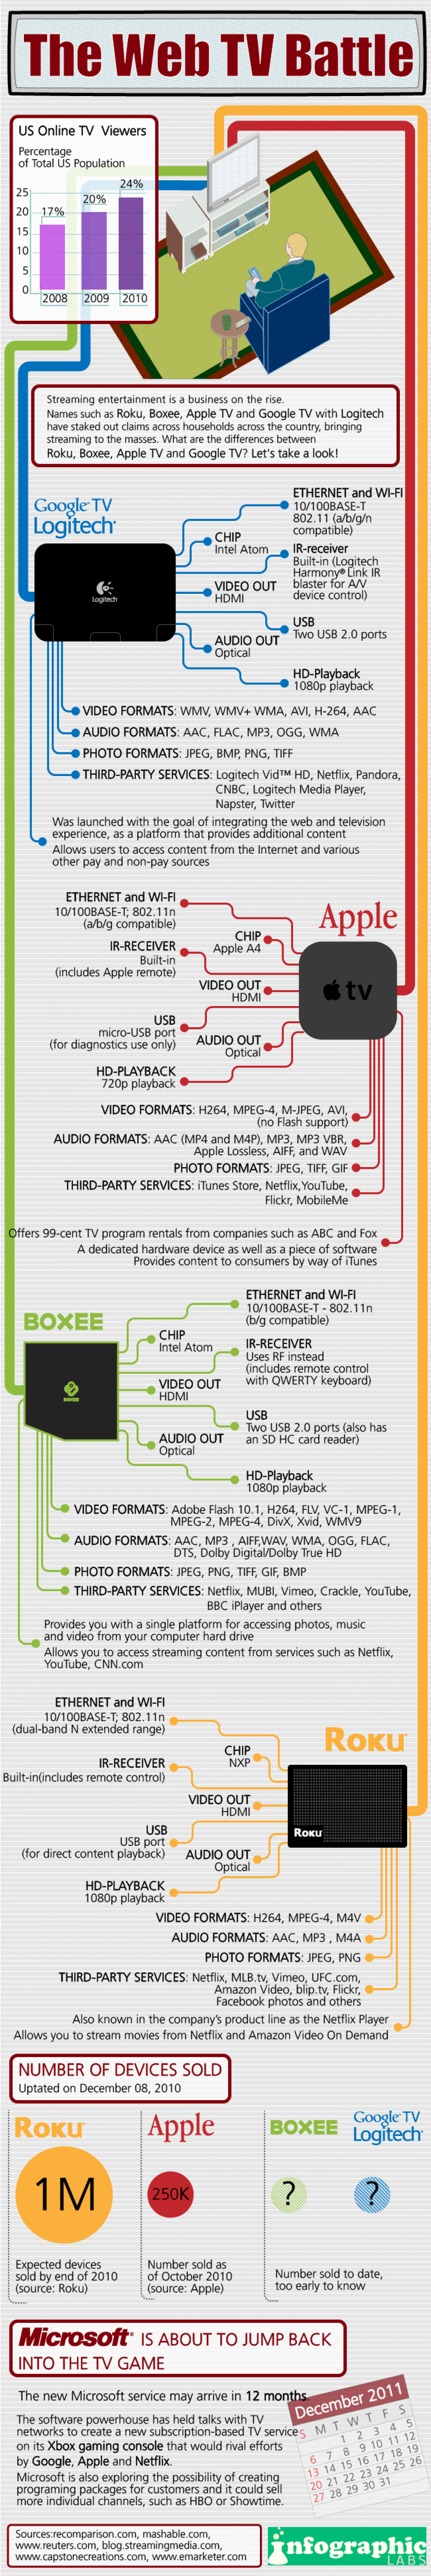 The Web TV Battle Infographic